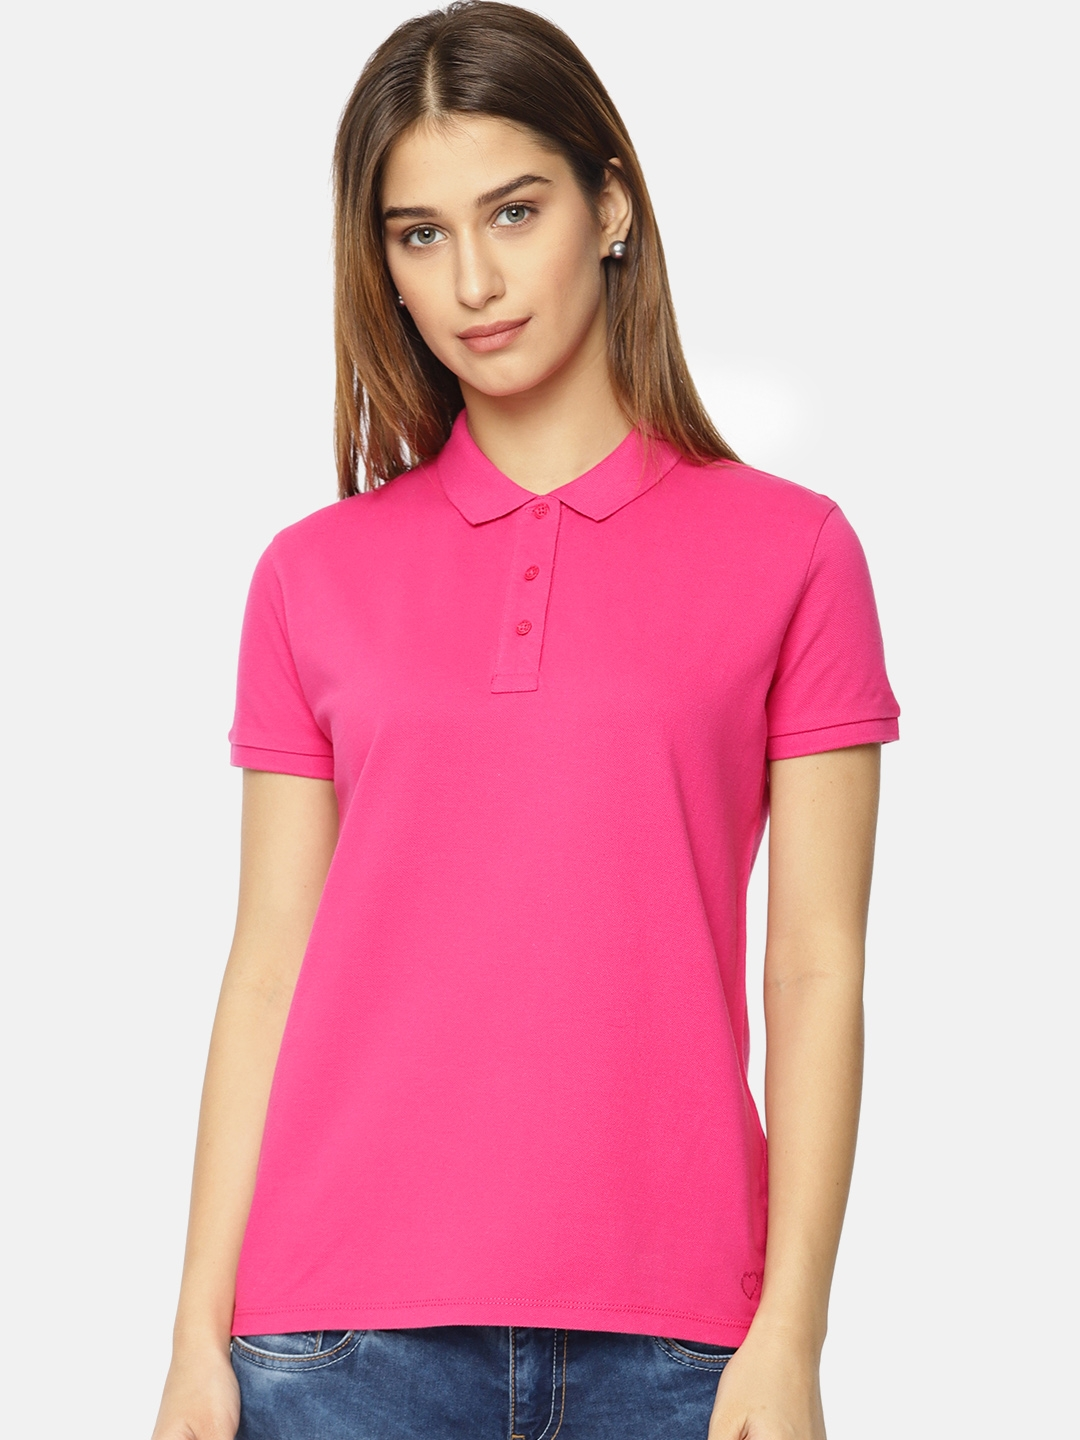 86ea0a78ca Buy Pepe Jeans Women Pink Solid Polo T Shirt - Tshirts for Women ...